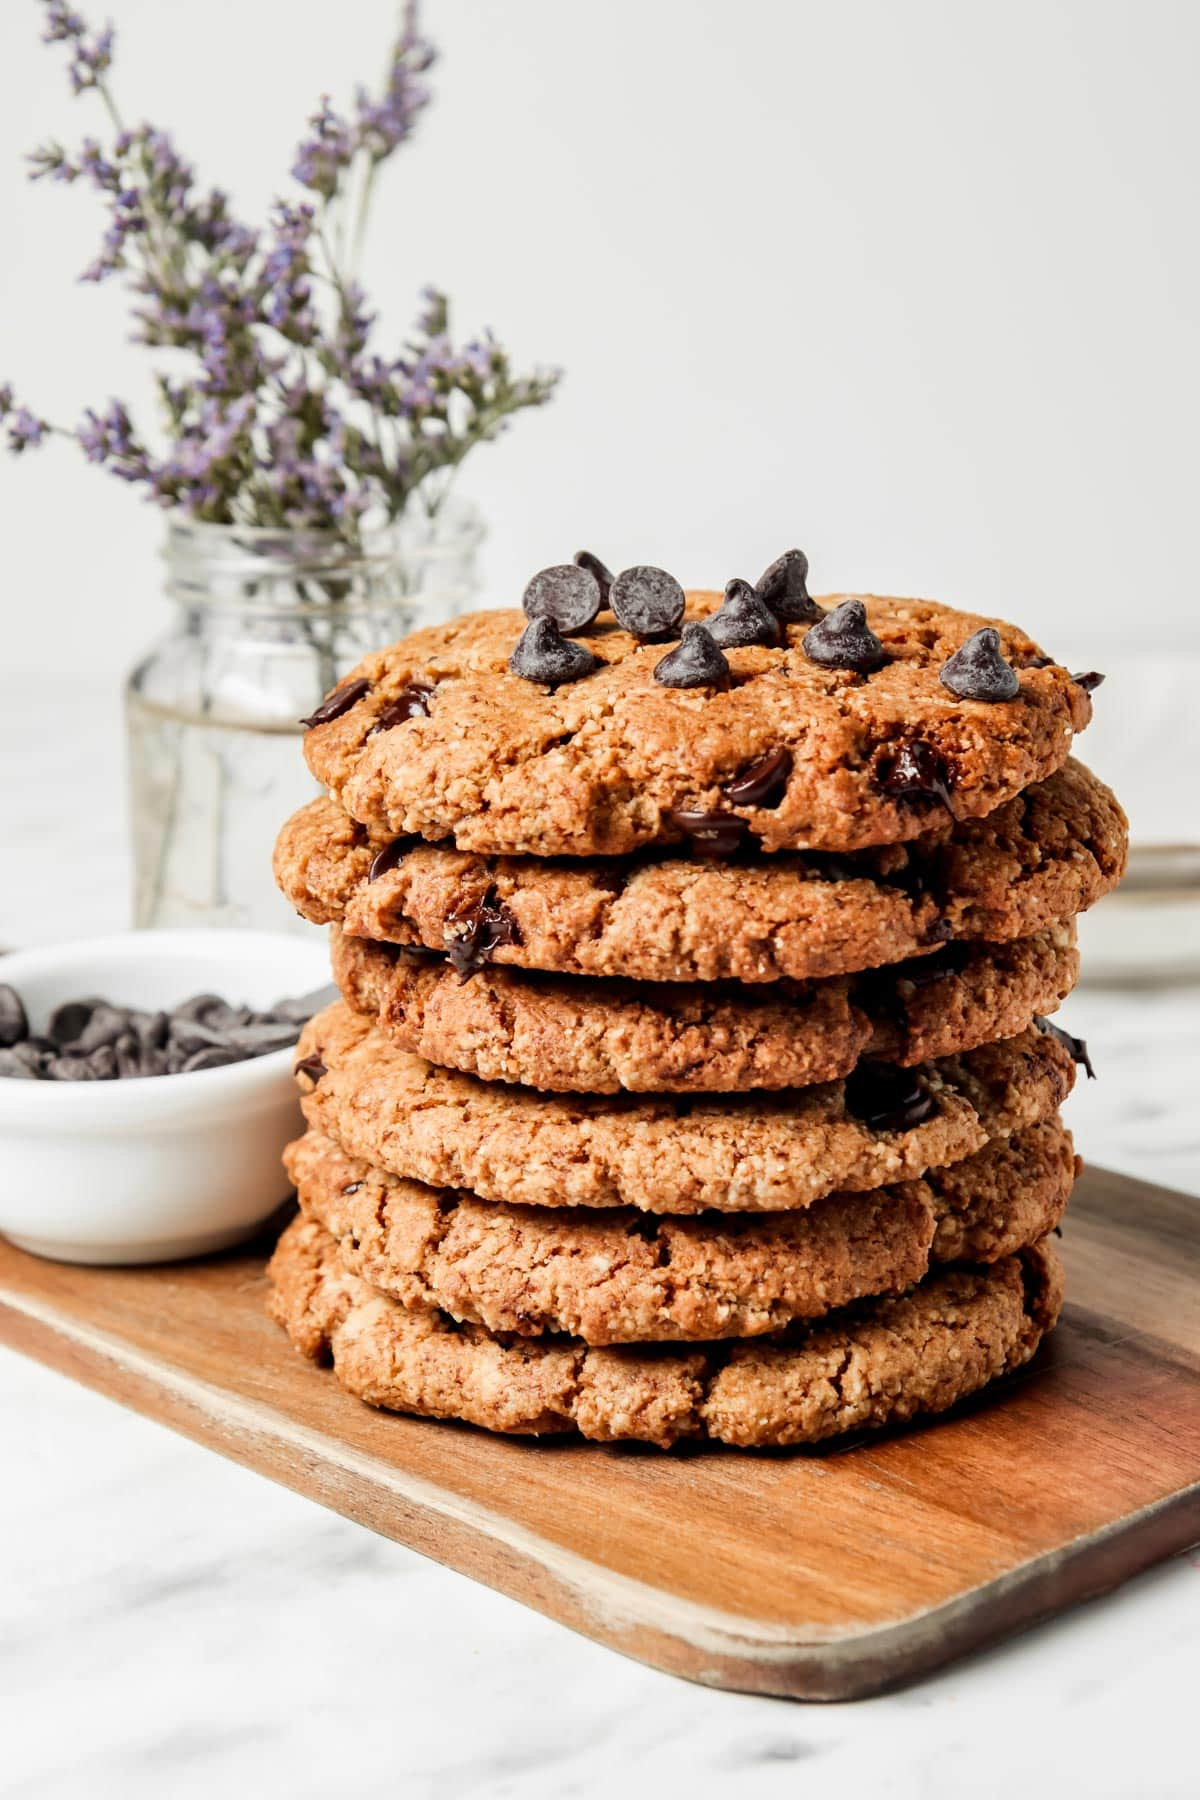 Stack of Almond Flour Cookies, chocolate chips in bowl, flower vase in background